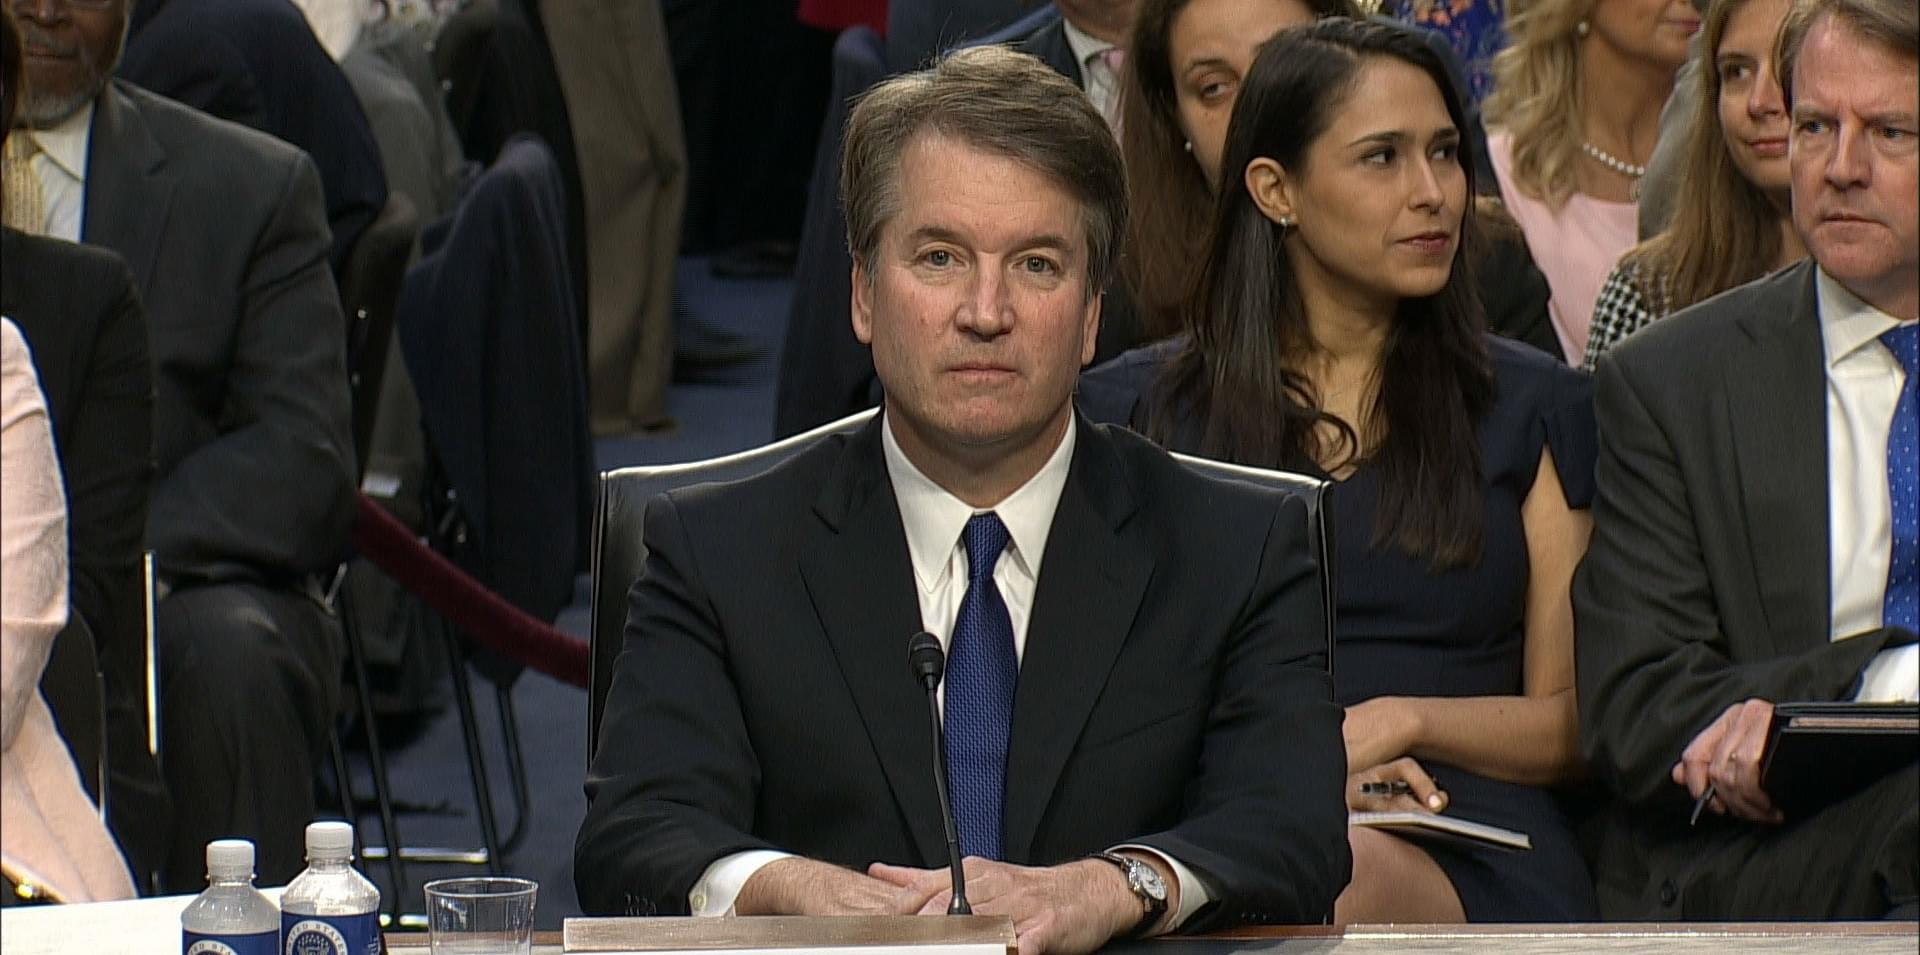 Morning News: The Kavanaugh Saga Continues; Who Do You Believe?